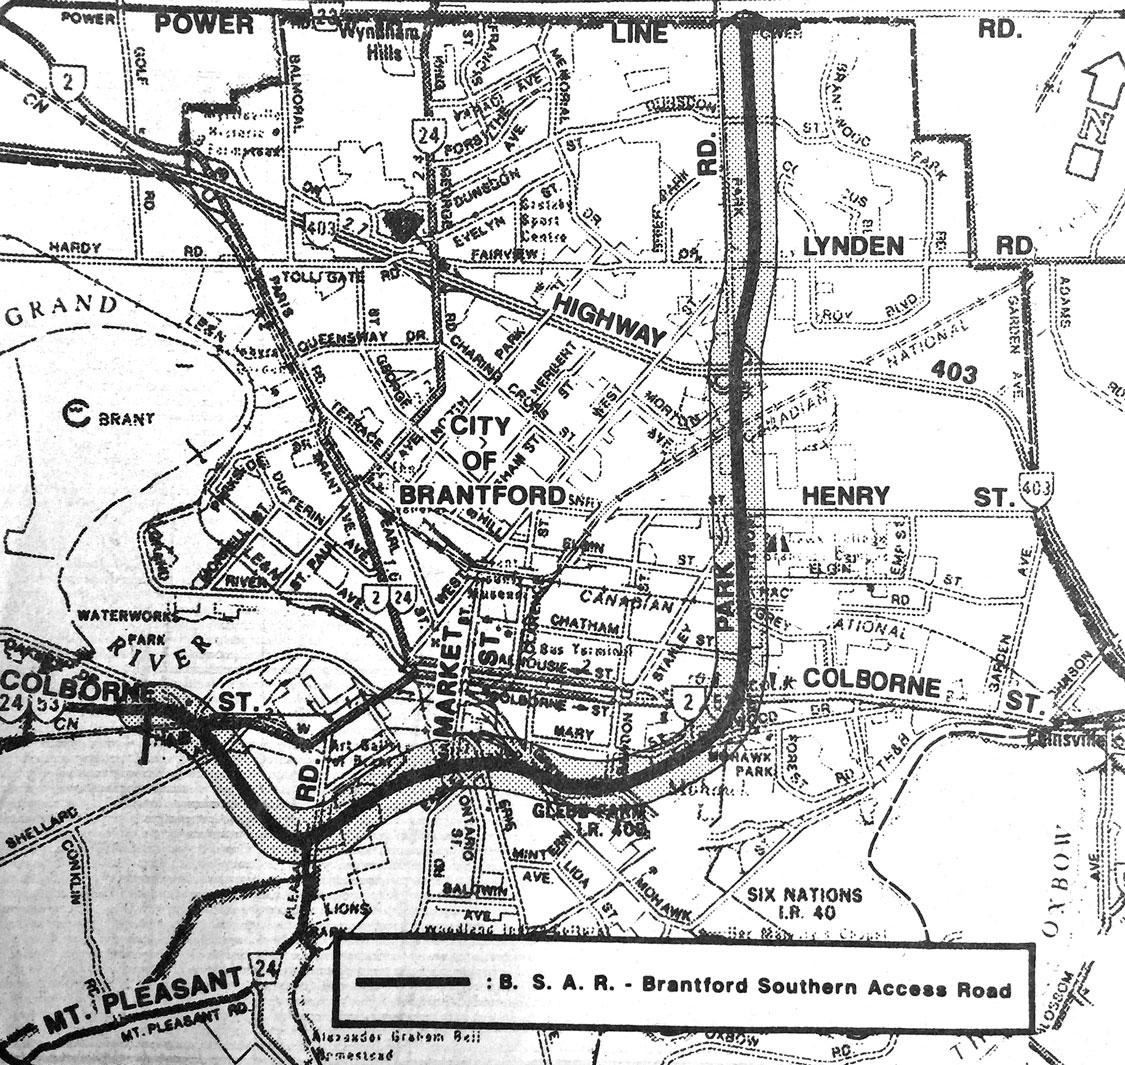 Map of the route of the Brantford Southern Access Road as proposed in 1966.